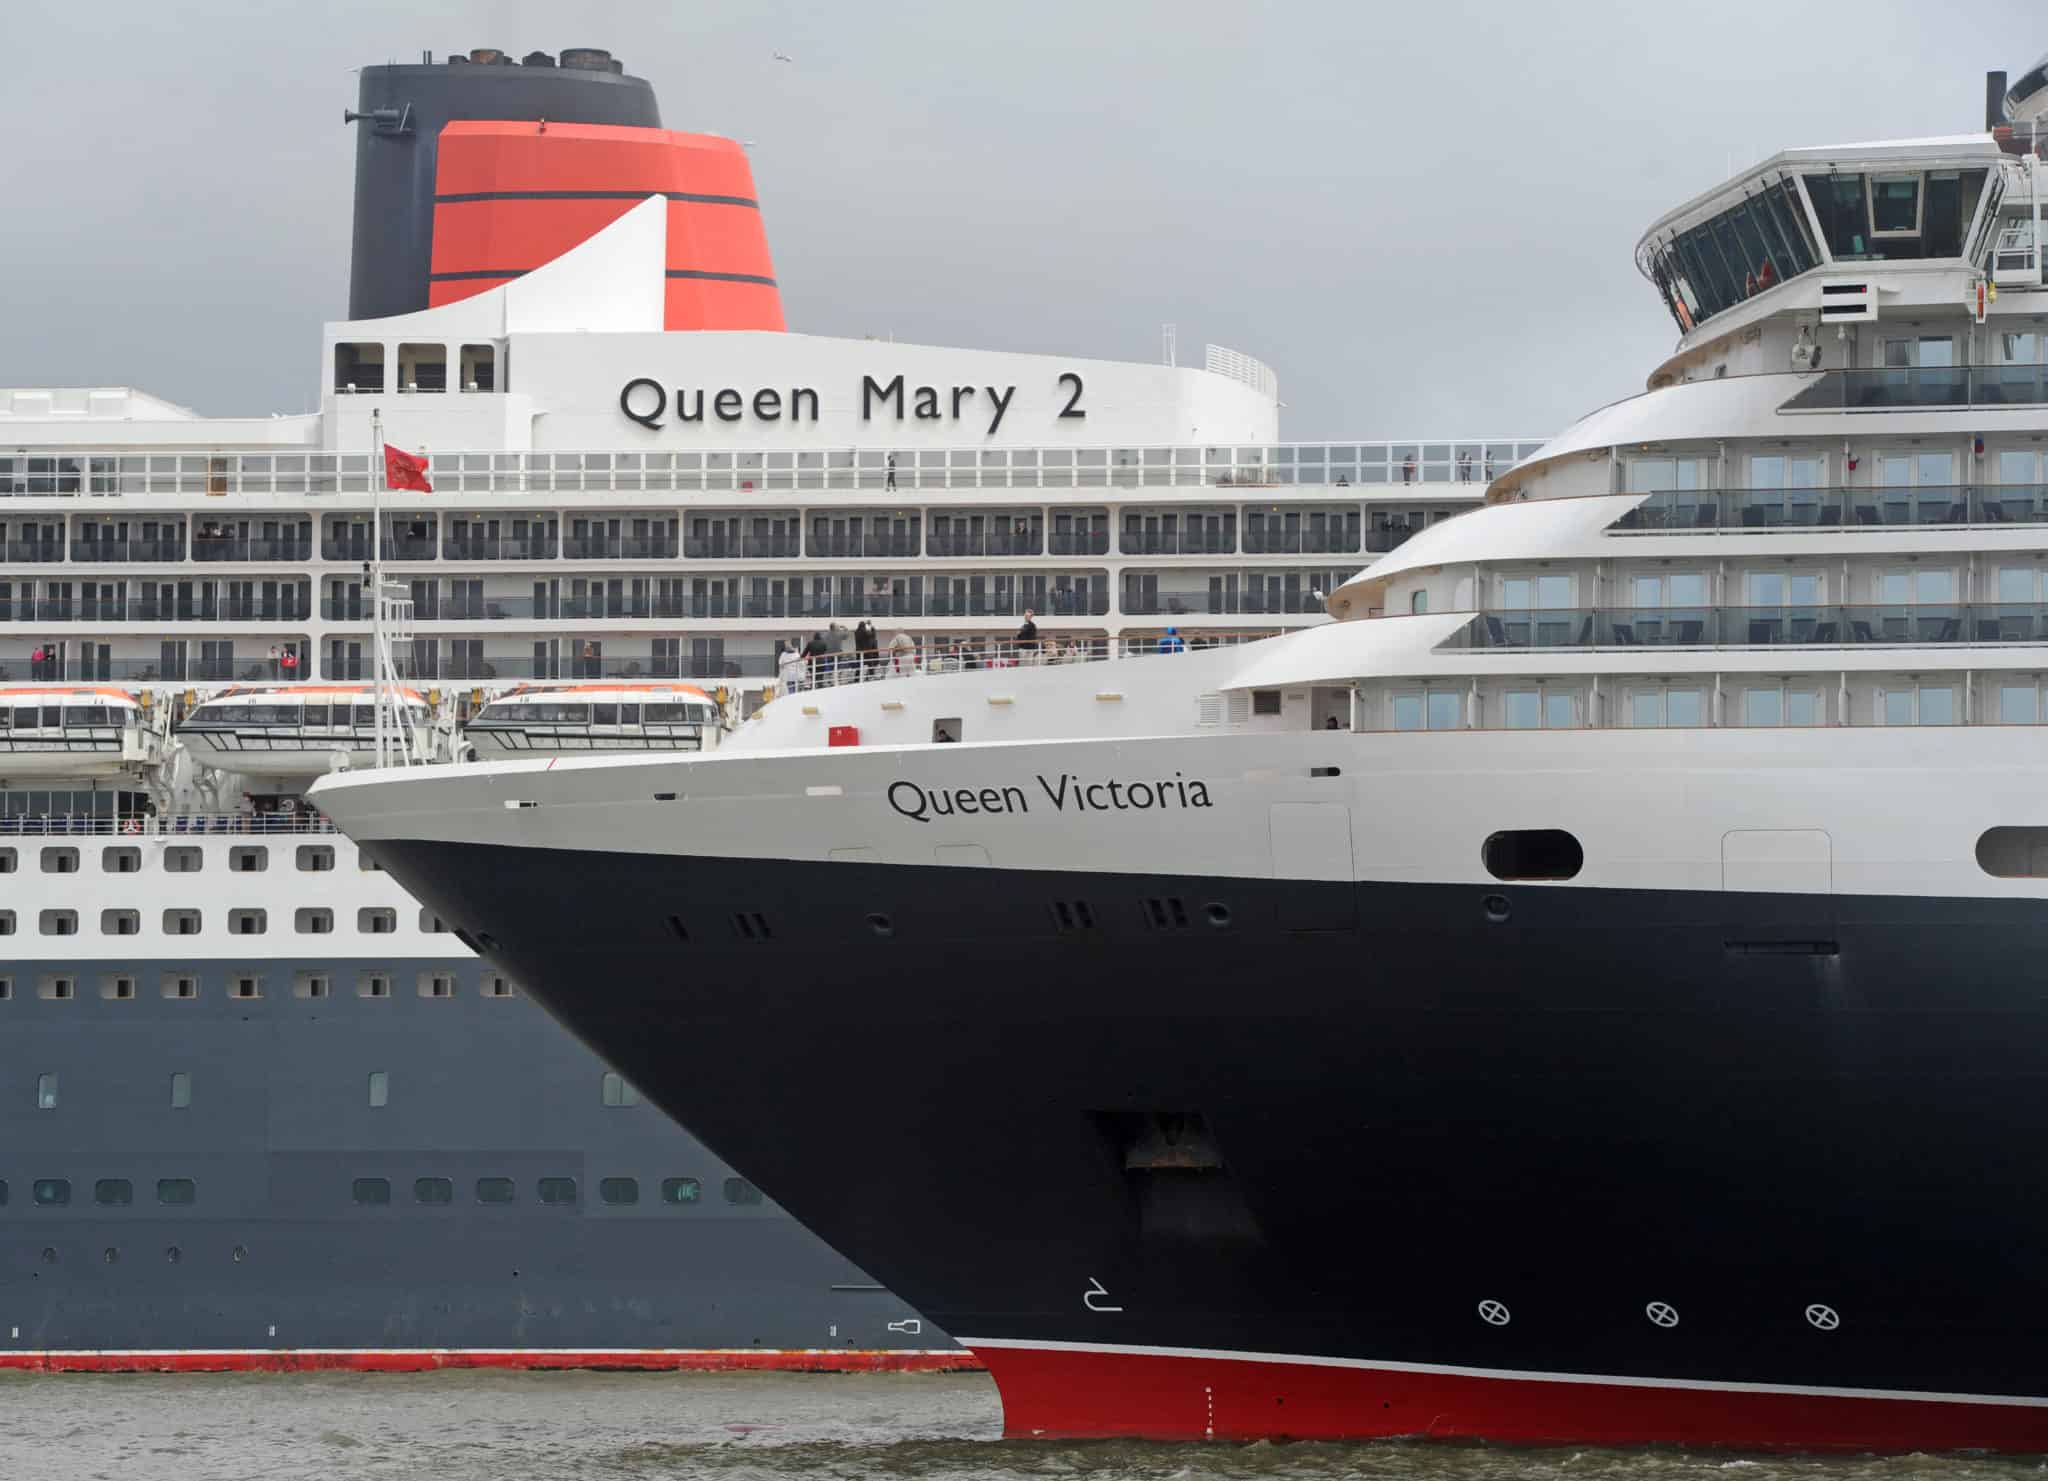 Cunard 175th celebrations on the River Mersey, Liverpool pictured The Three Queens cruise liners Queen Mary 2 and Queen Victoria on the river. Photo by Colin Lane